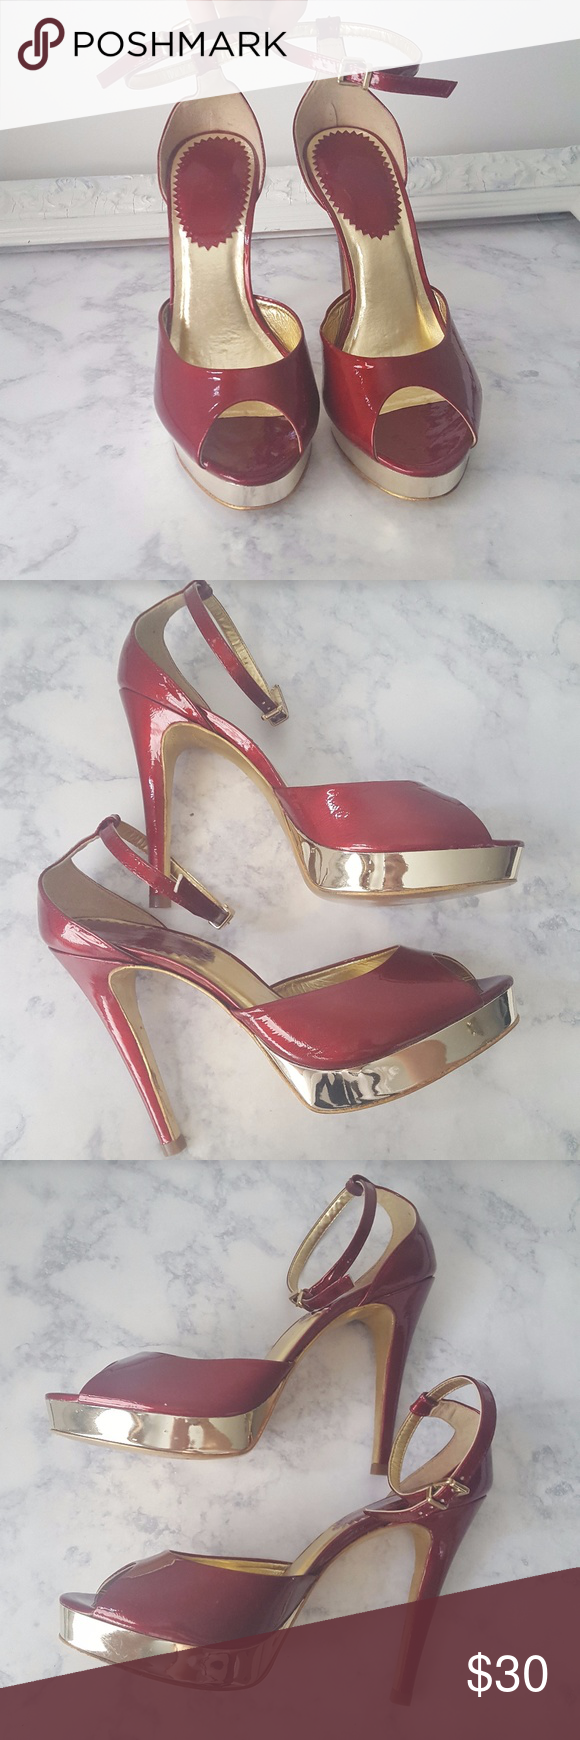 ALDO Heels women sz 7.5 Platform Stiletto ankle ALDO Heels women sz 7.5 Platform Stiletto ankle strap patent leather Red/Gold Platform Stiletto Patent Leather with gold metallic platform and trim has ankle strap leather sole made in Brazil So pretty for all the holiday parties or events ALDO Shoes Heels